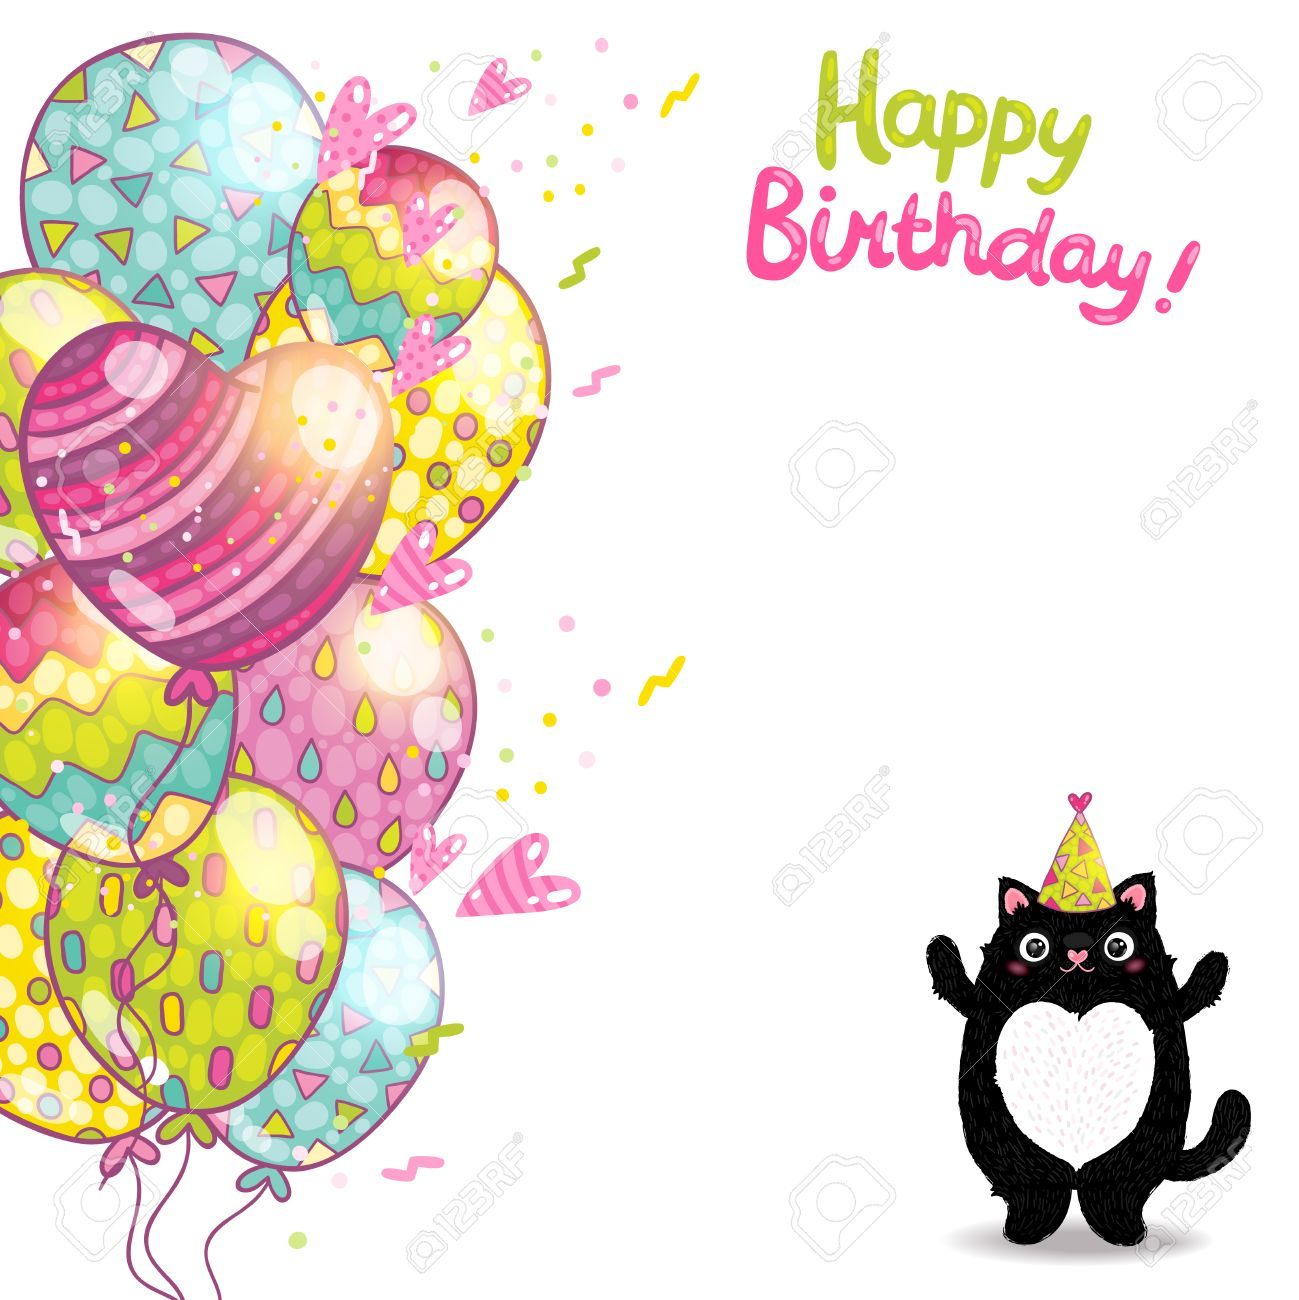 doc 425425 happy birthday cards templates happy birthday card happy birthday card background a cat vector holiday party happy birthday cards templates